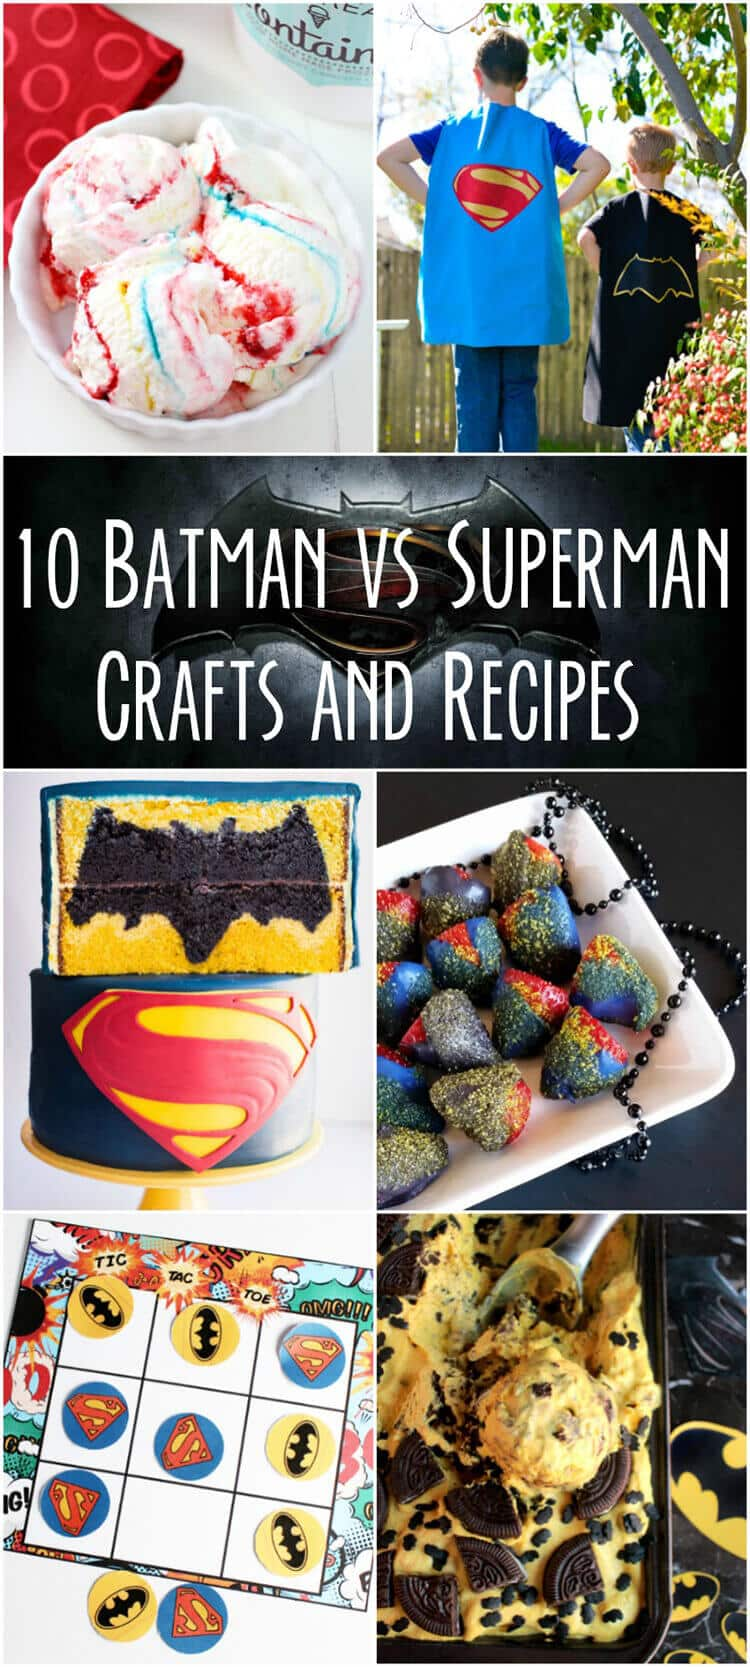 ten Batman vs Superman crafts and recipes you'll want to make